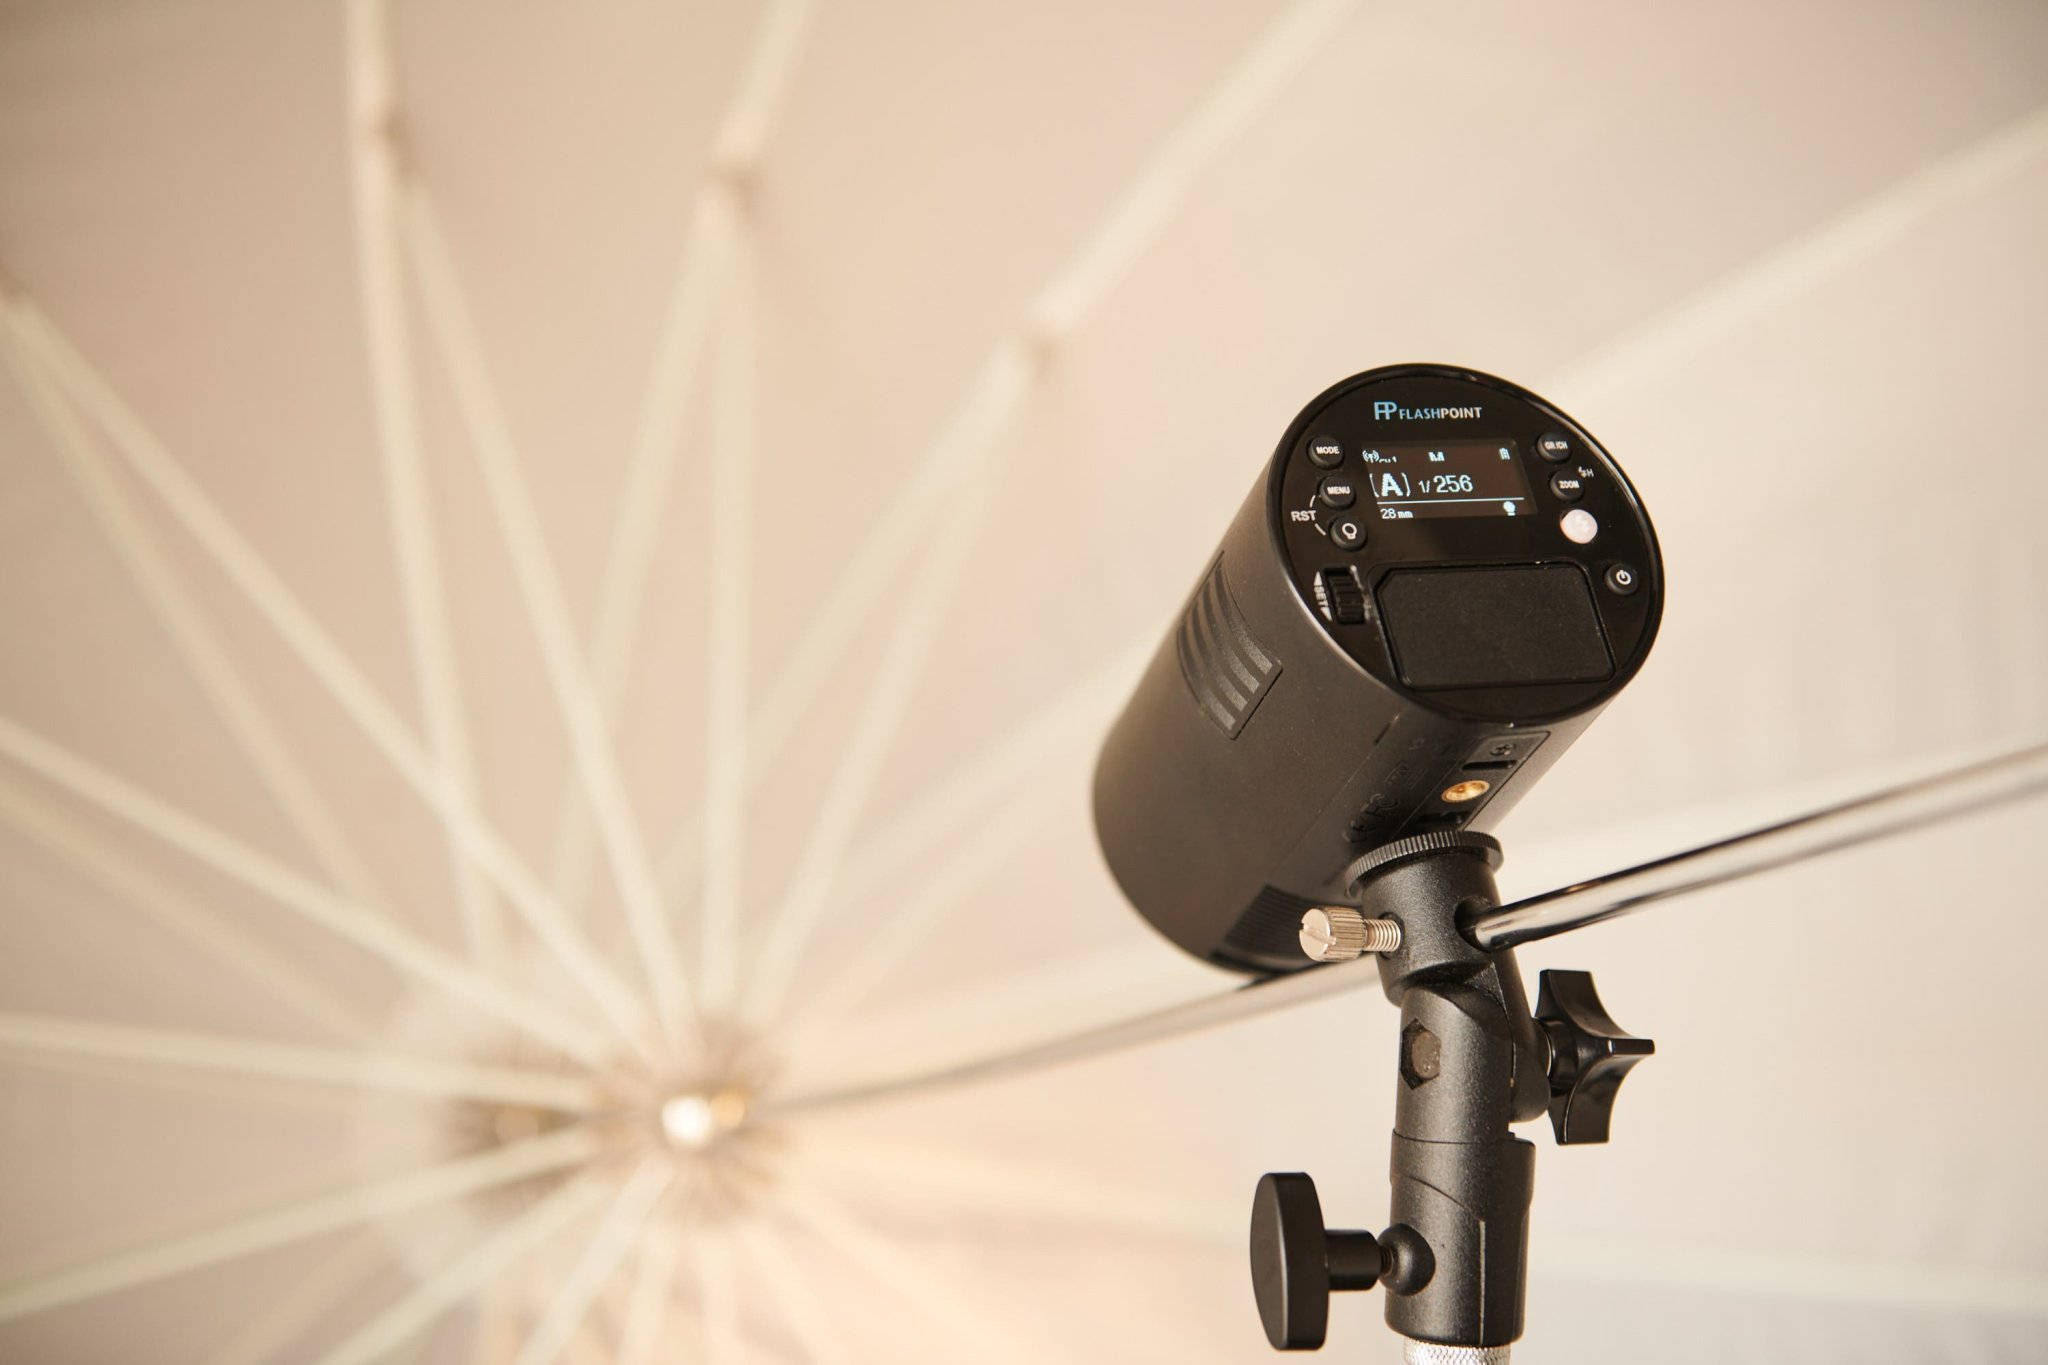 Look Out! Is This A Speedlight Killer? Flashpoint Xplor 100 Pro Review